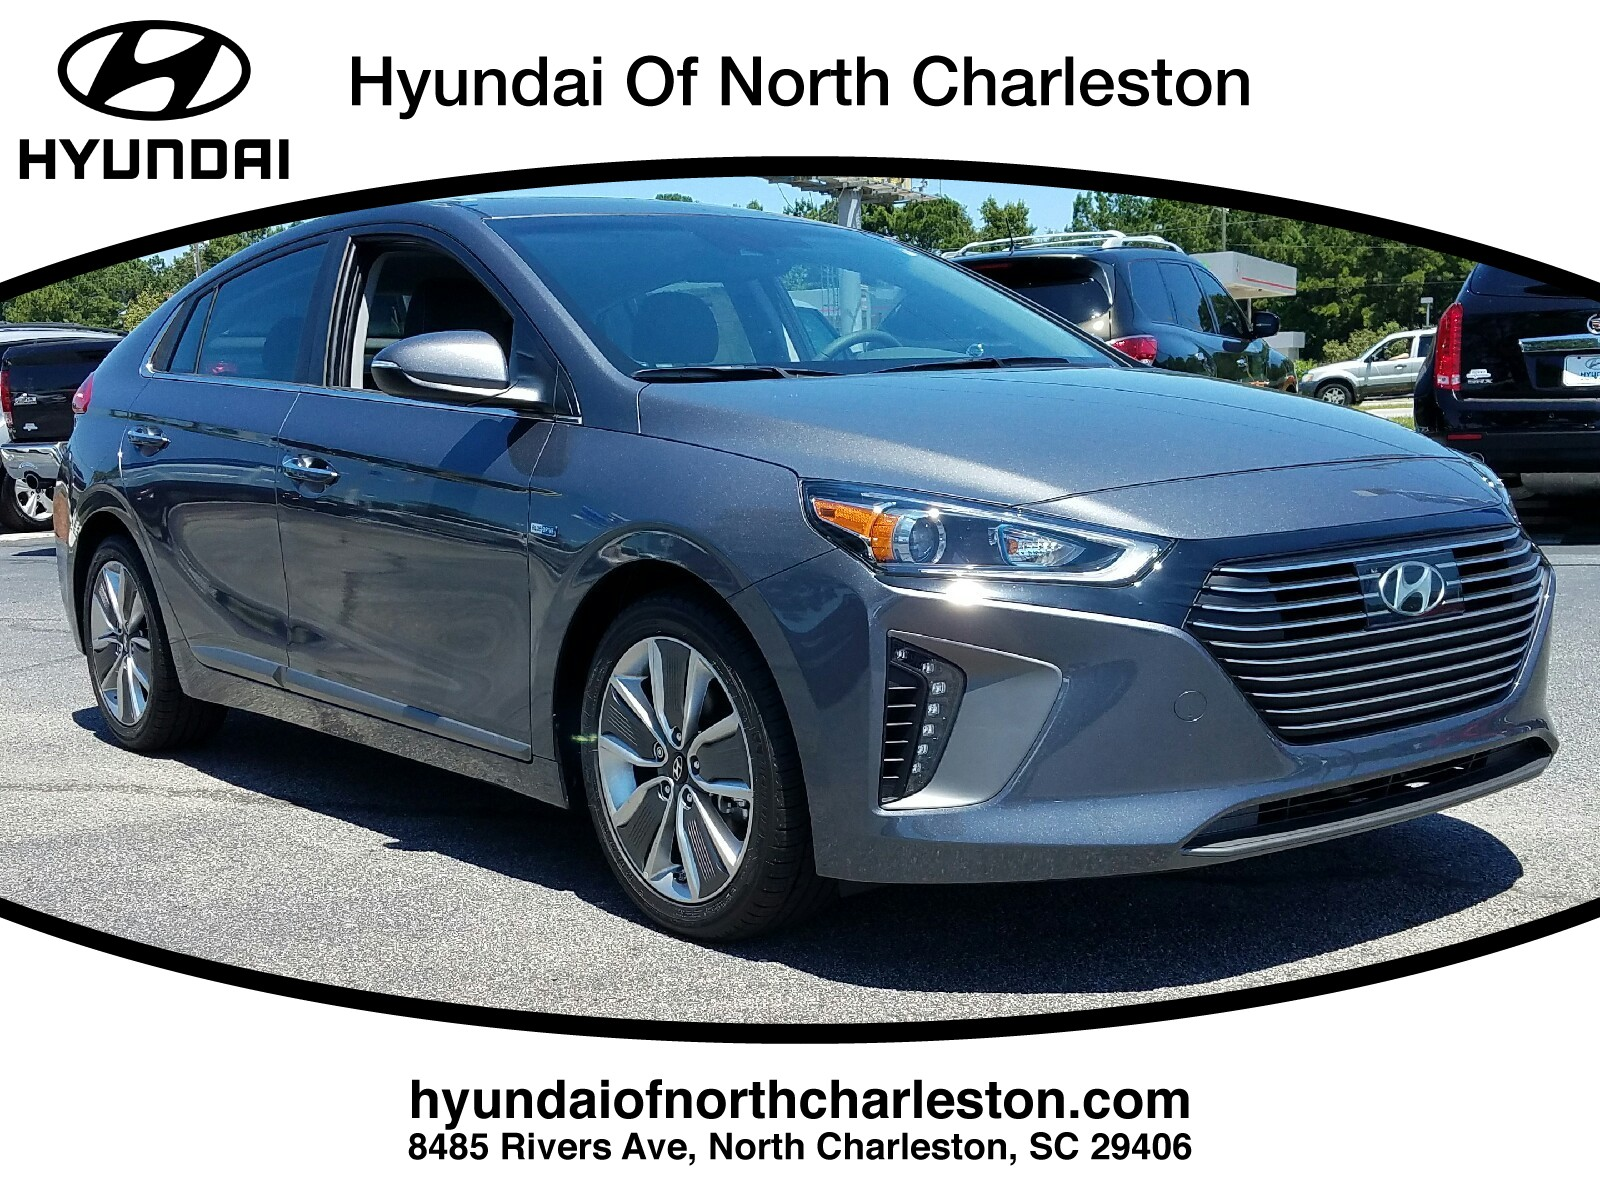 Used Hybrid Cars For Sale Best Of Cars For Sale Near Me Hybrid Used Cars